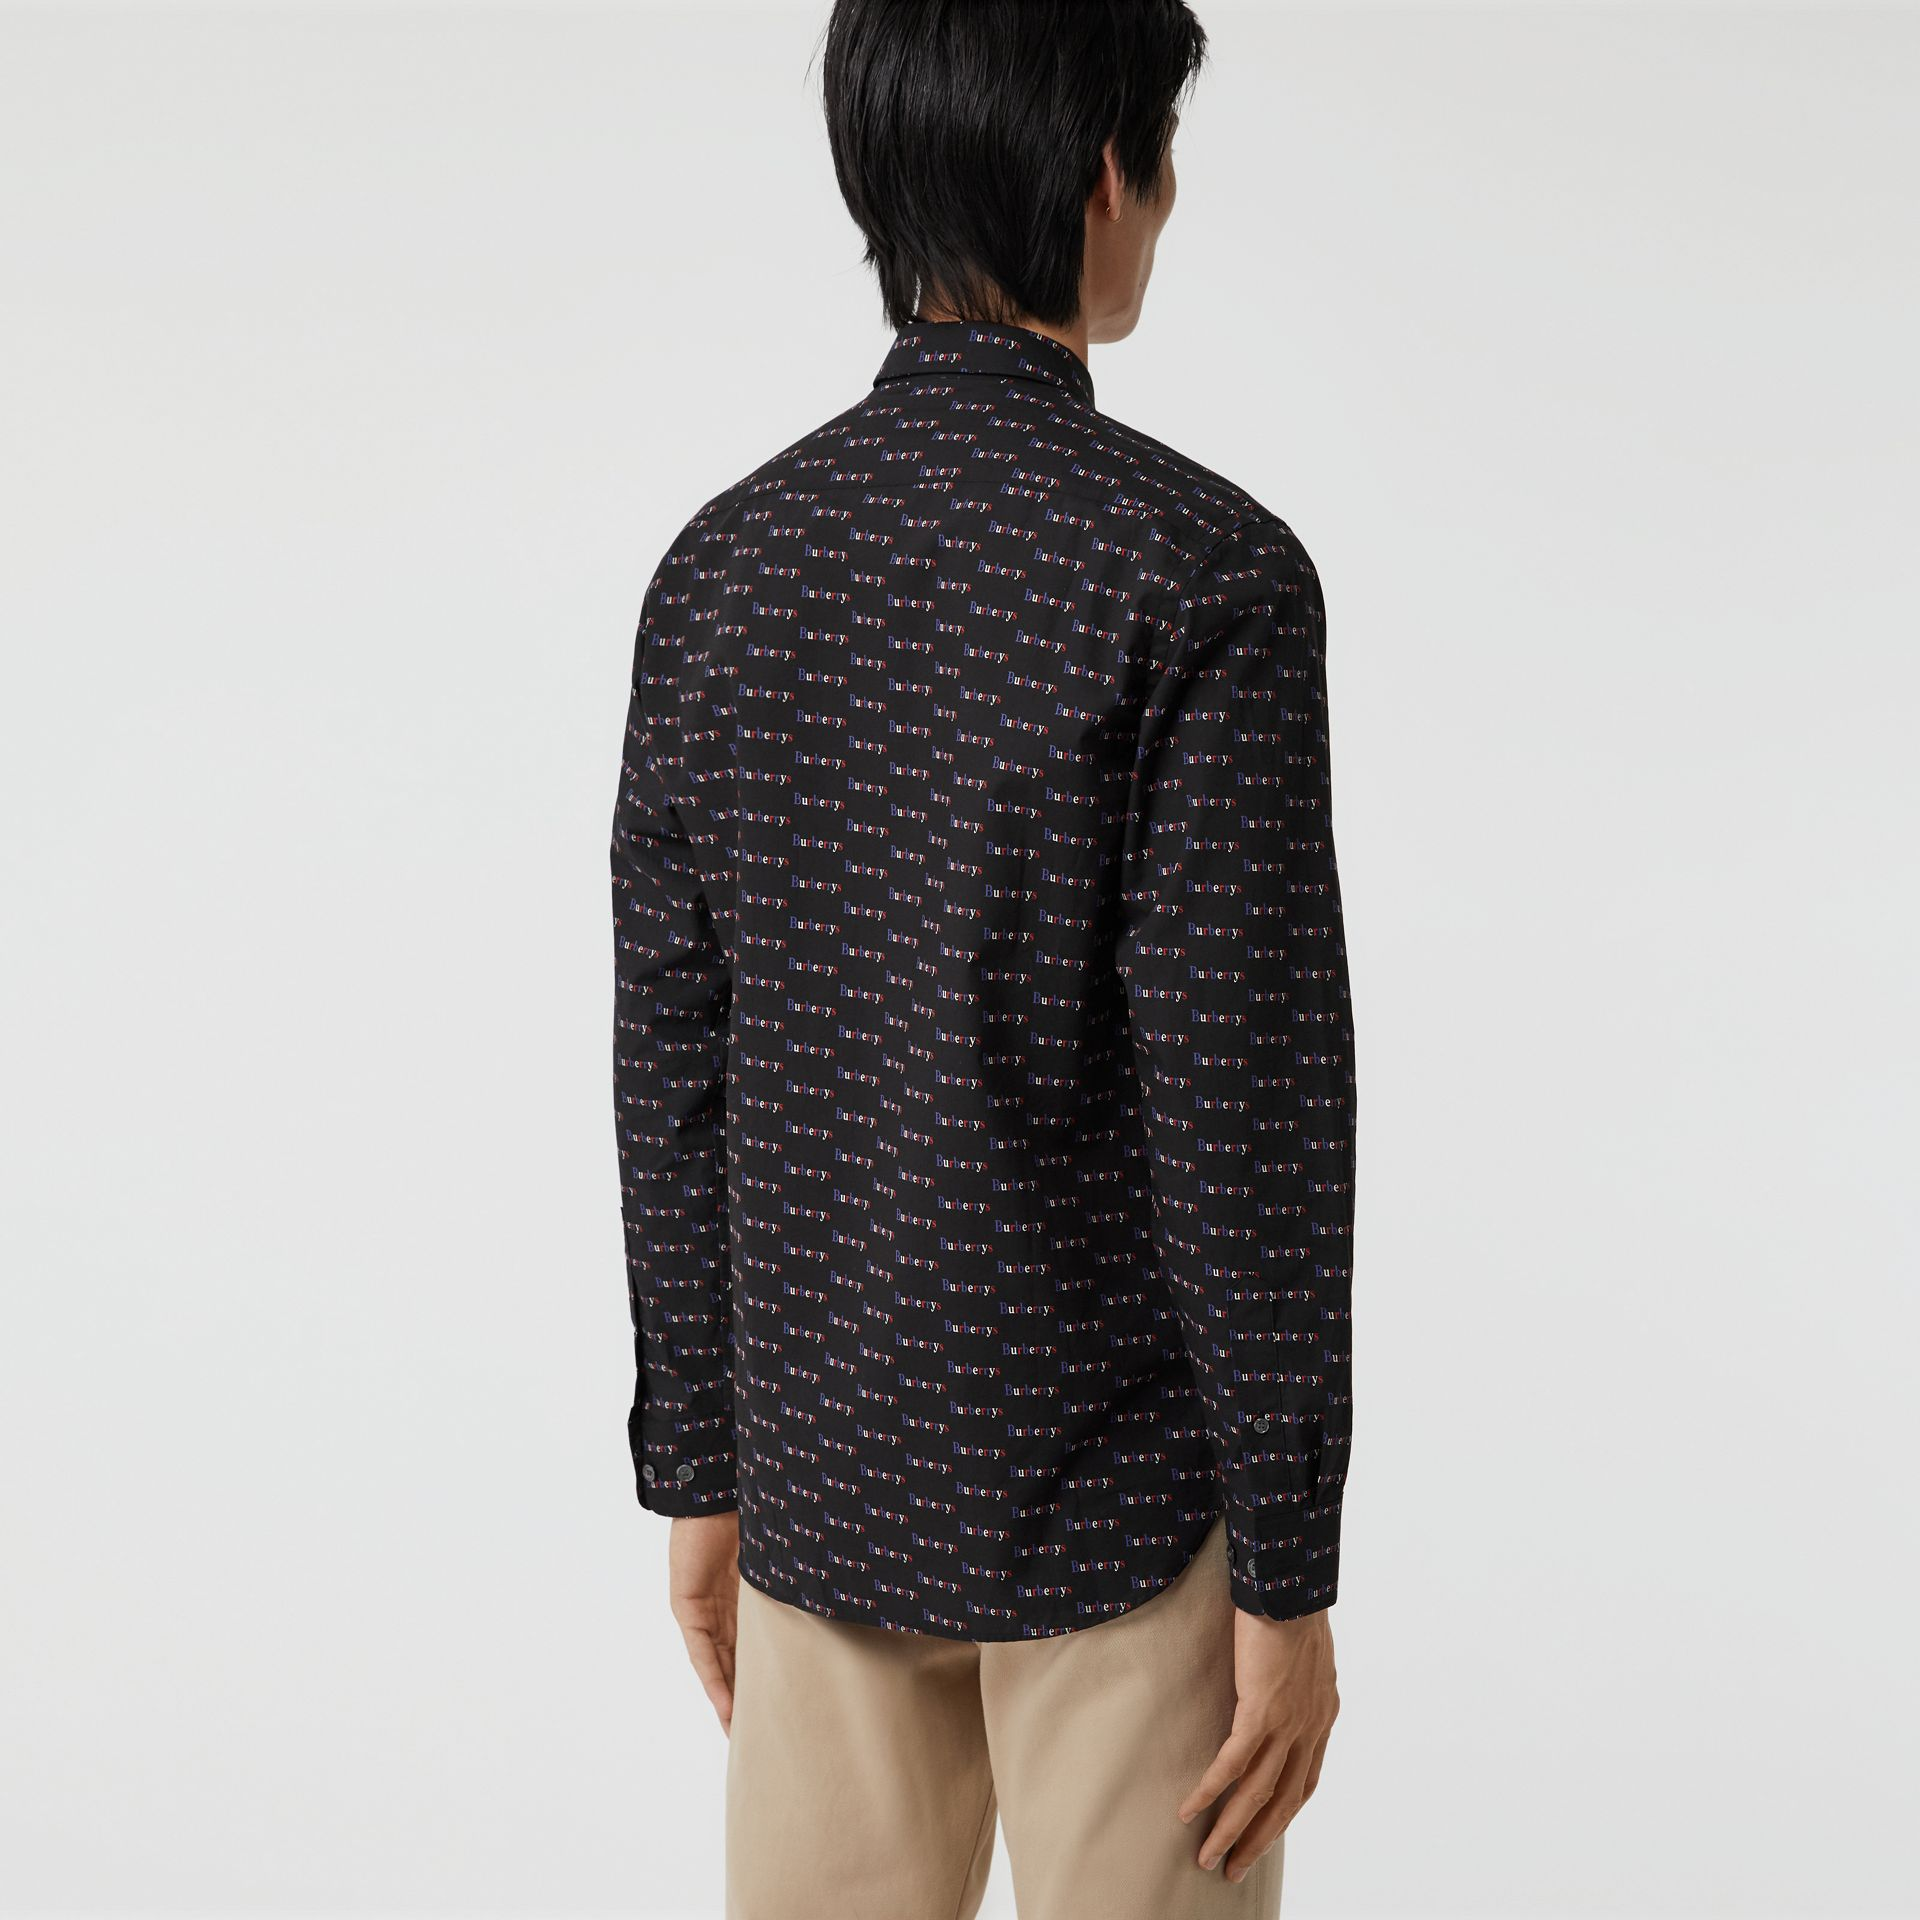 Logo Print Cotton Shirt in Black - Men | Burberry Australia - gallery image 2